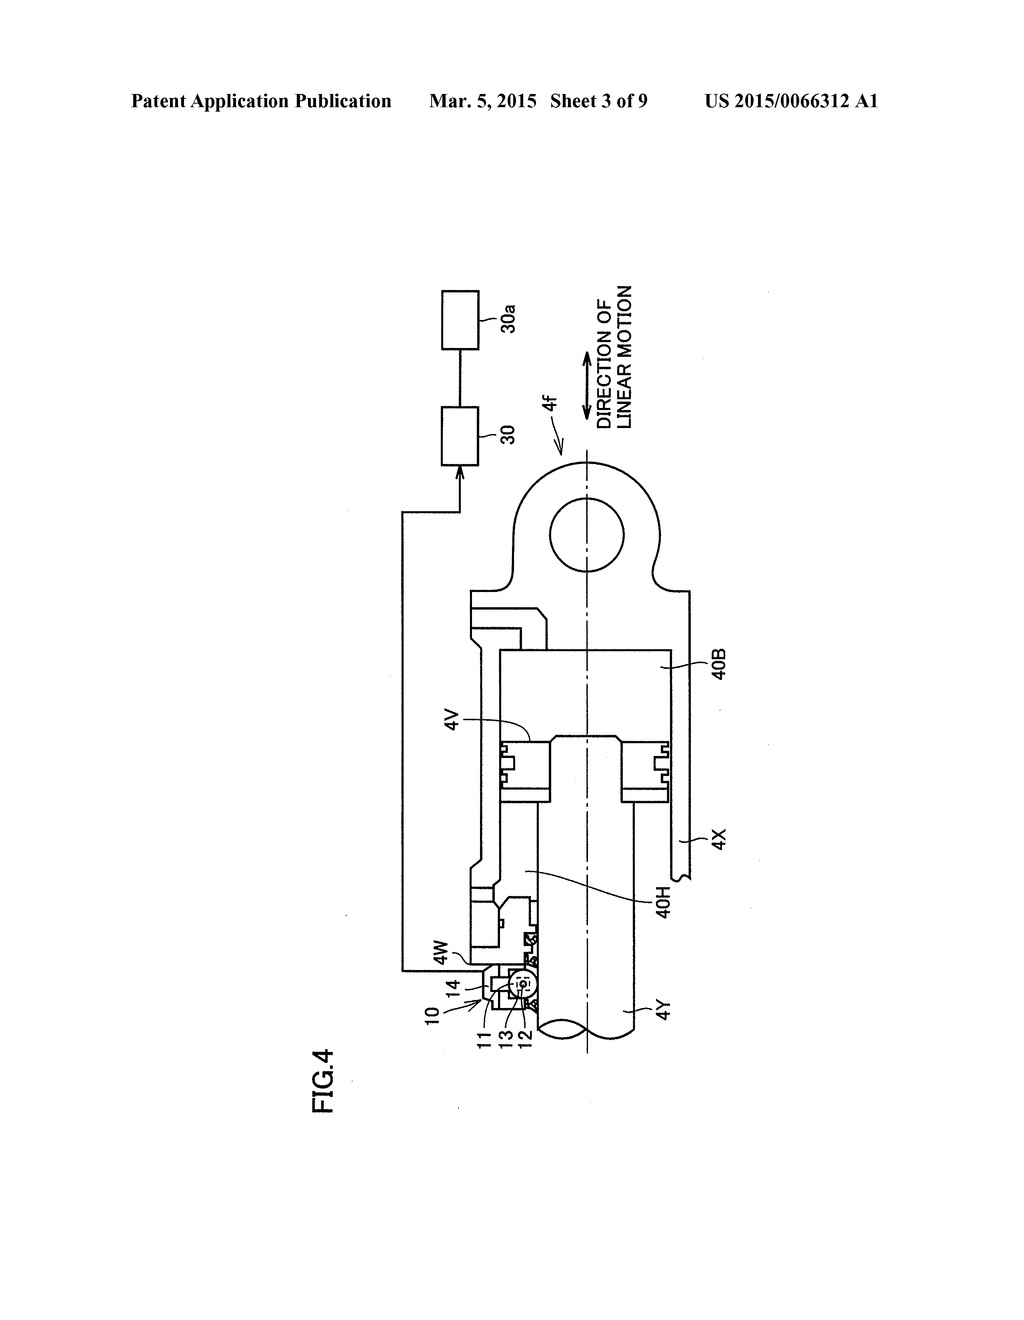 Excavator Hydraulic Cylinder Schematic Electrical Wiring Diagrams And Method For Measuring Stroke Of Loader